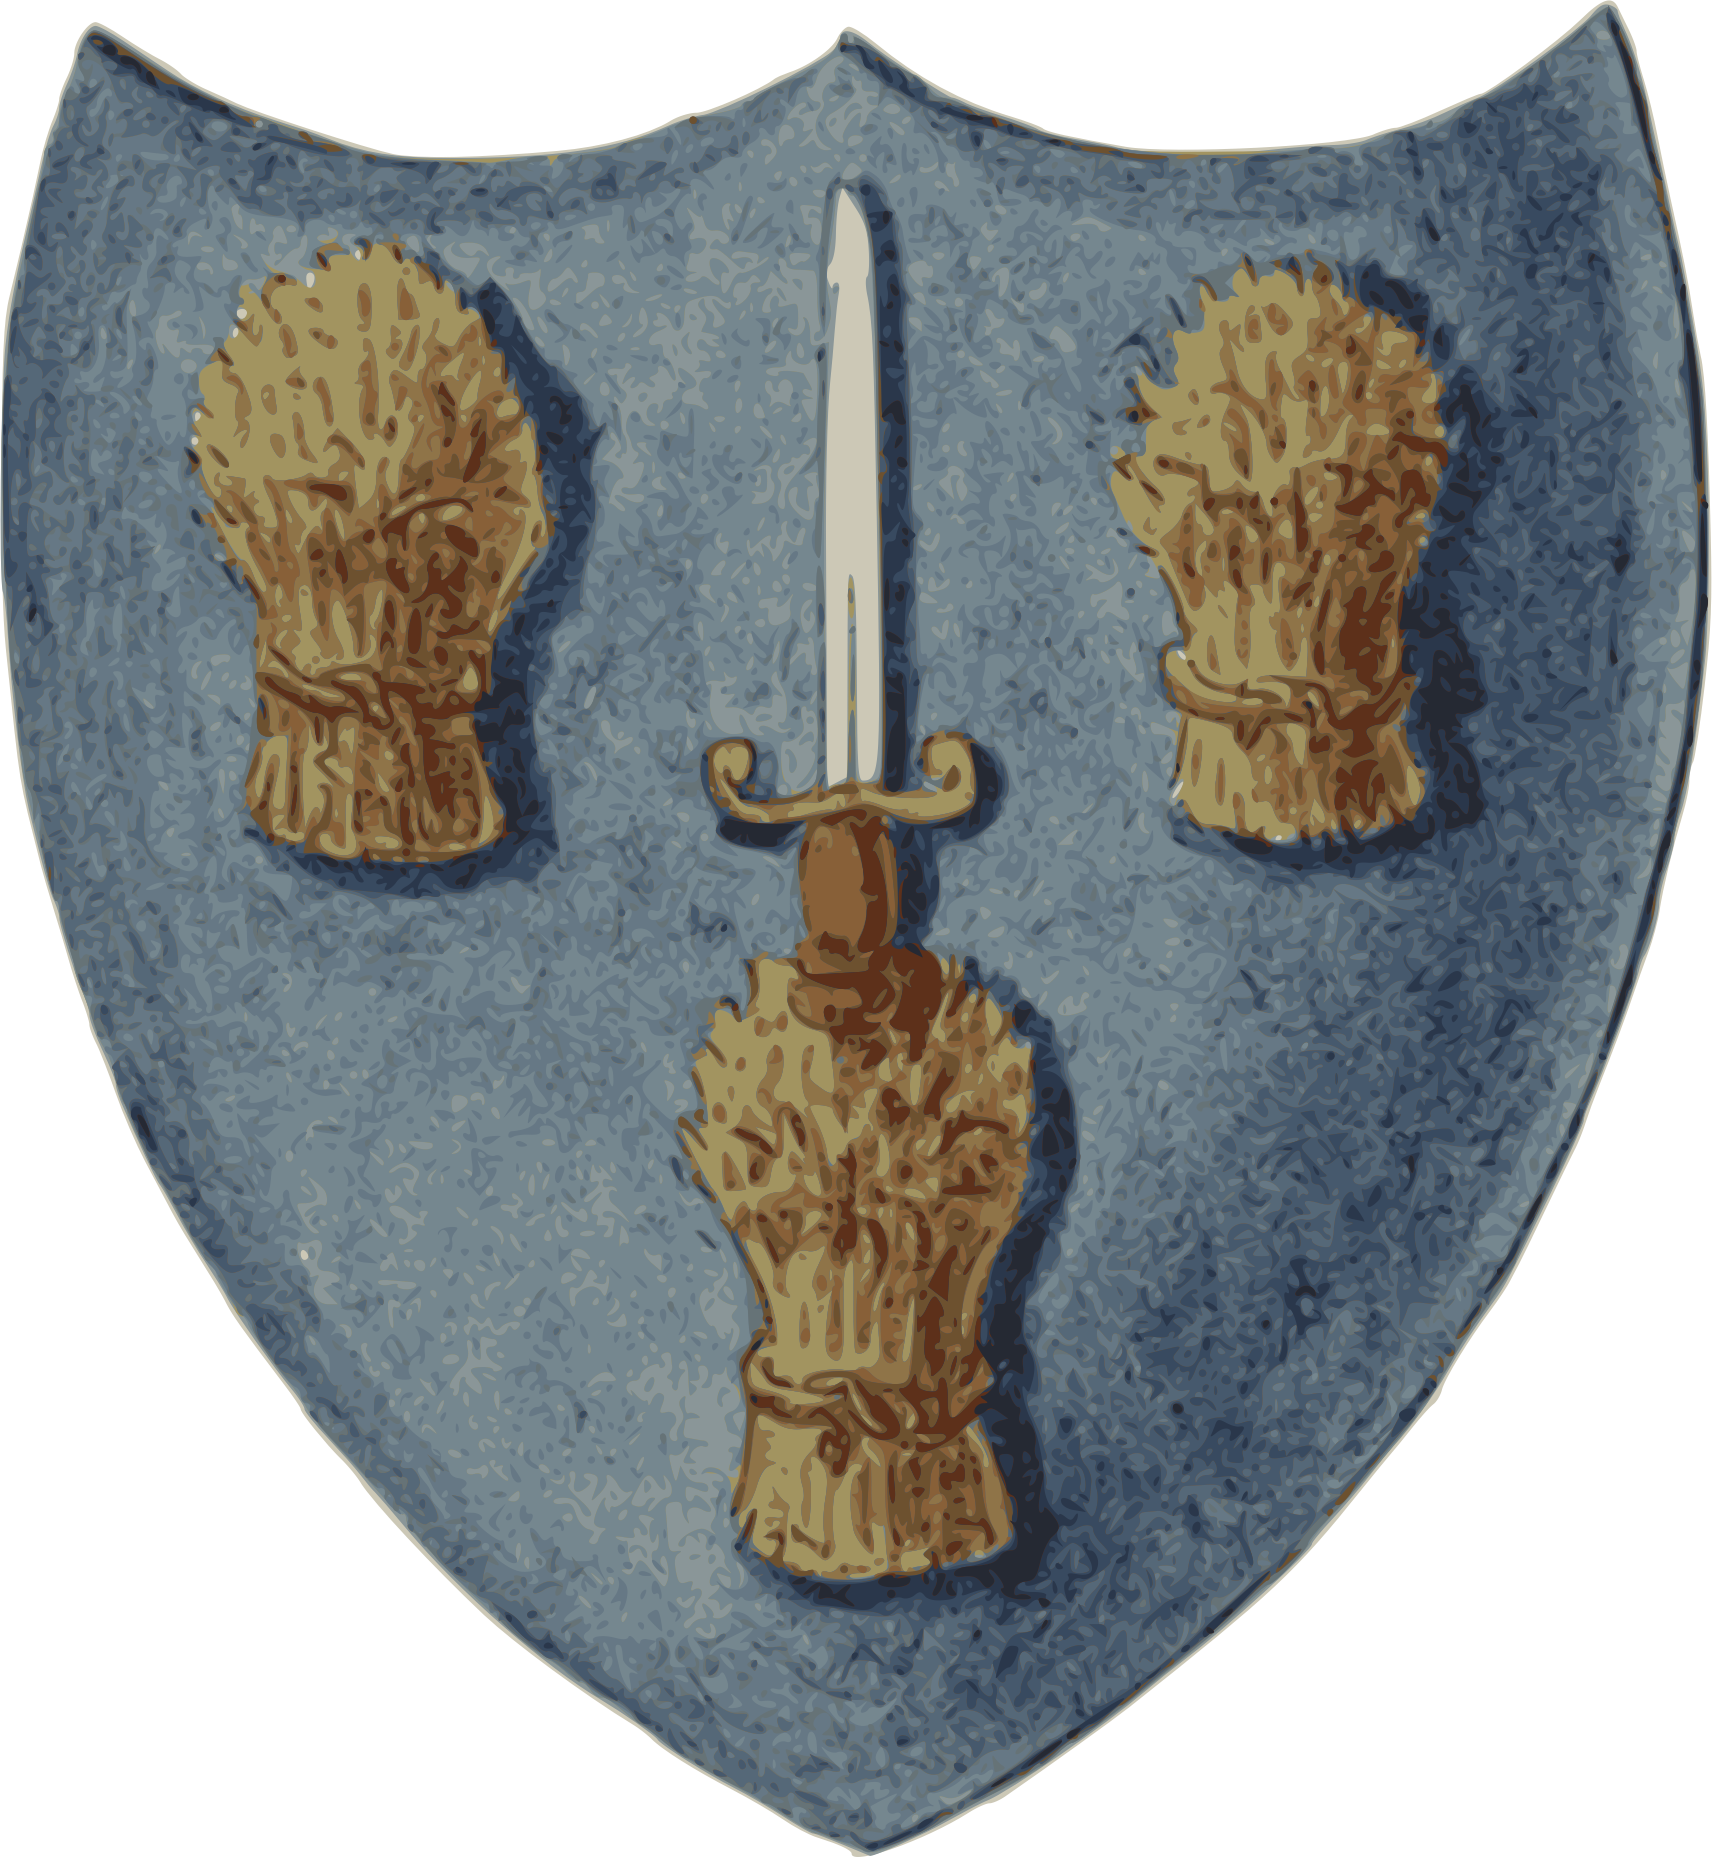 Arfbais Caer | Arms of Chester by addysgLLGC